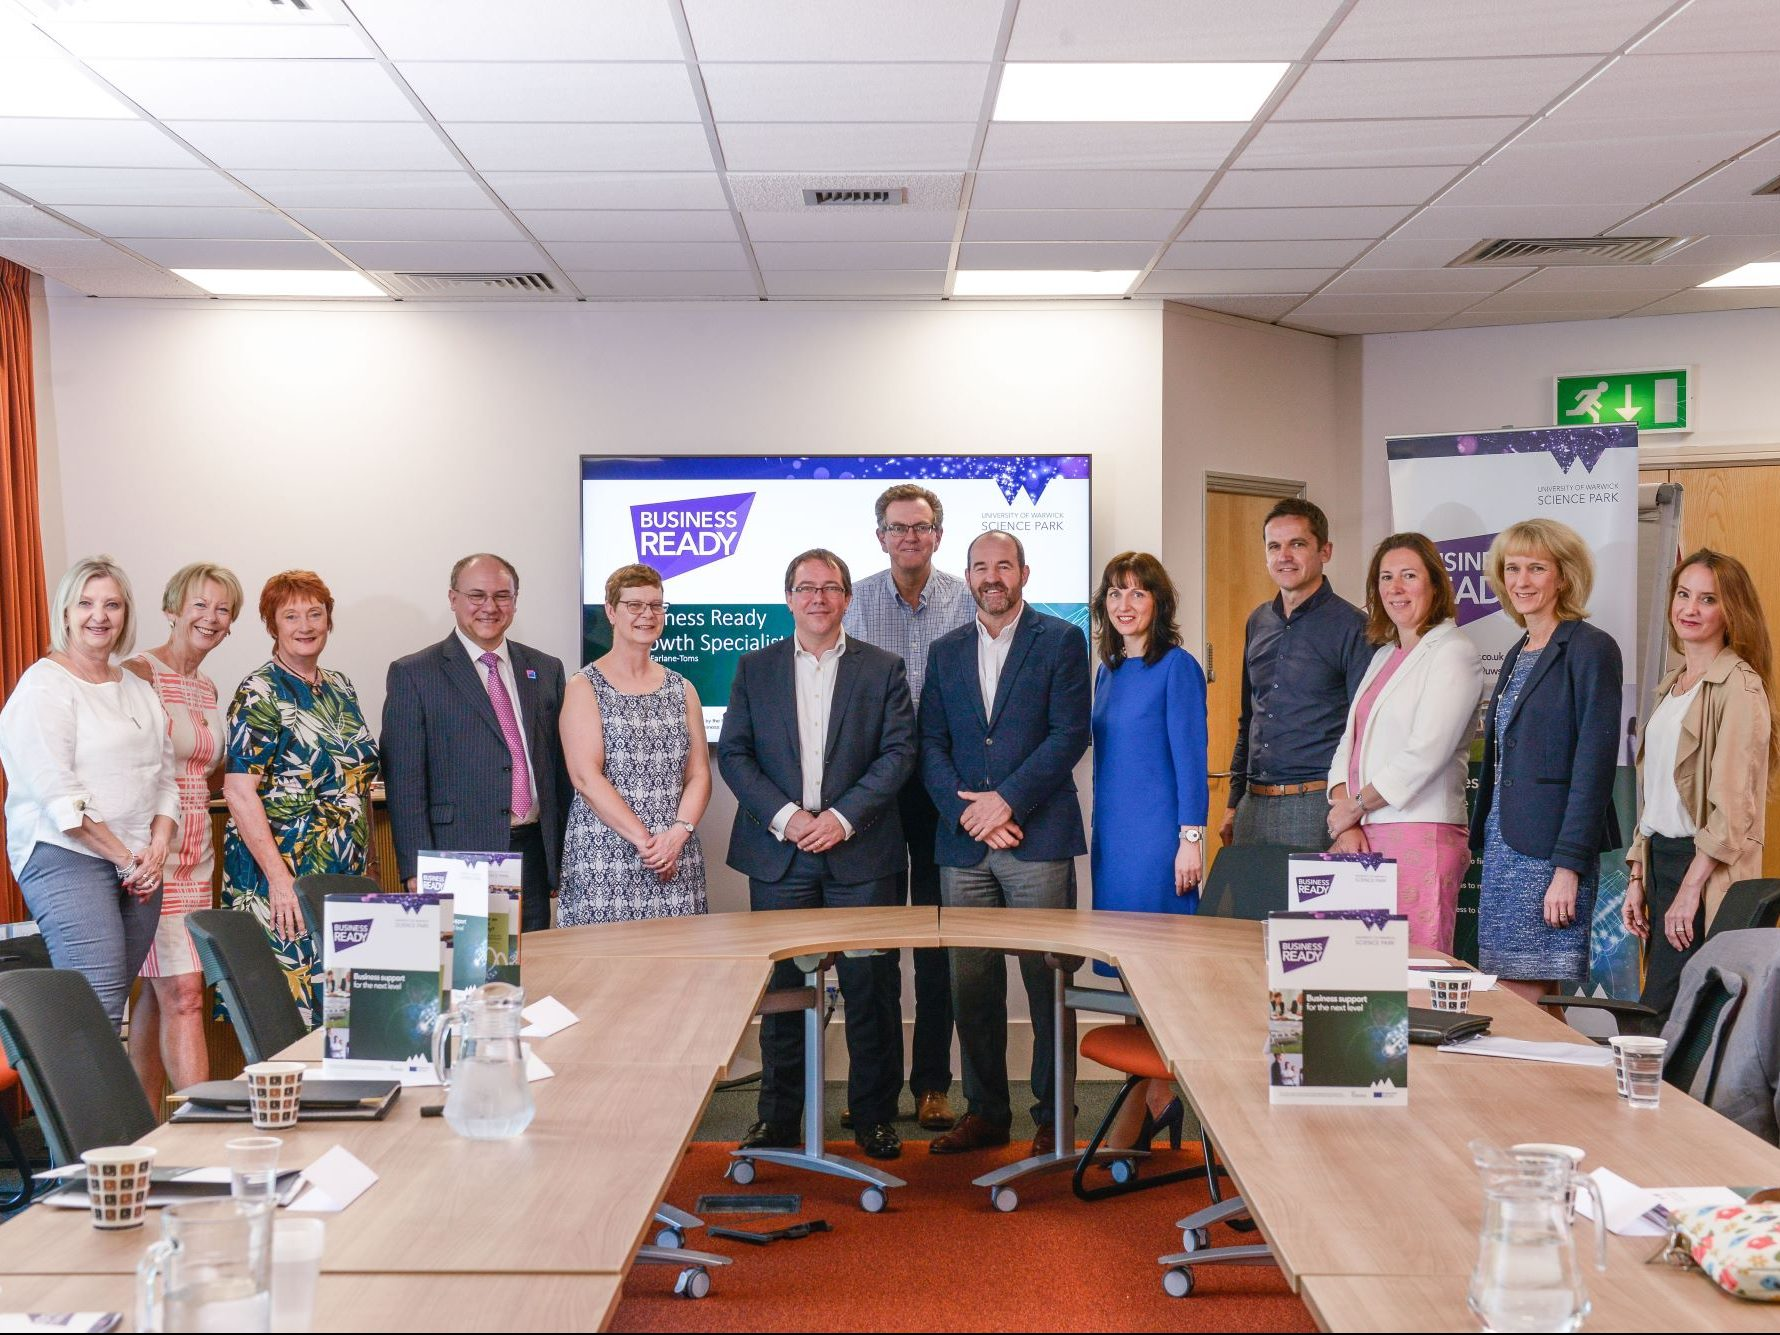 Second phase of major business support programme launched